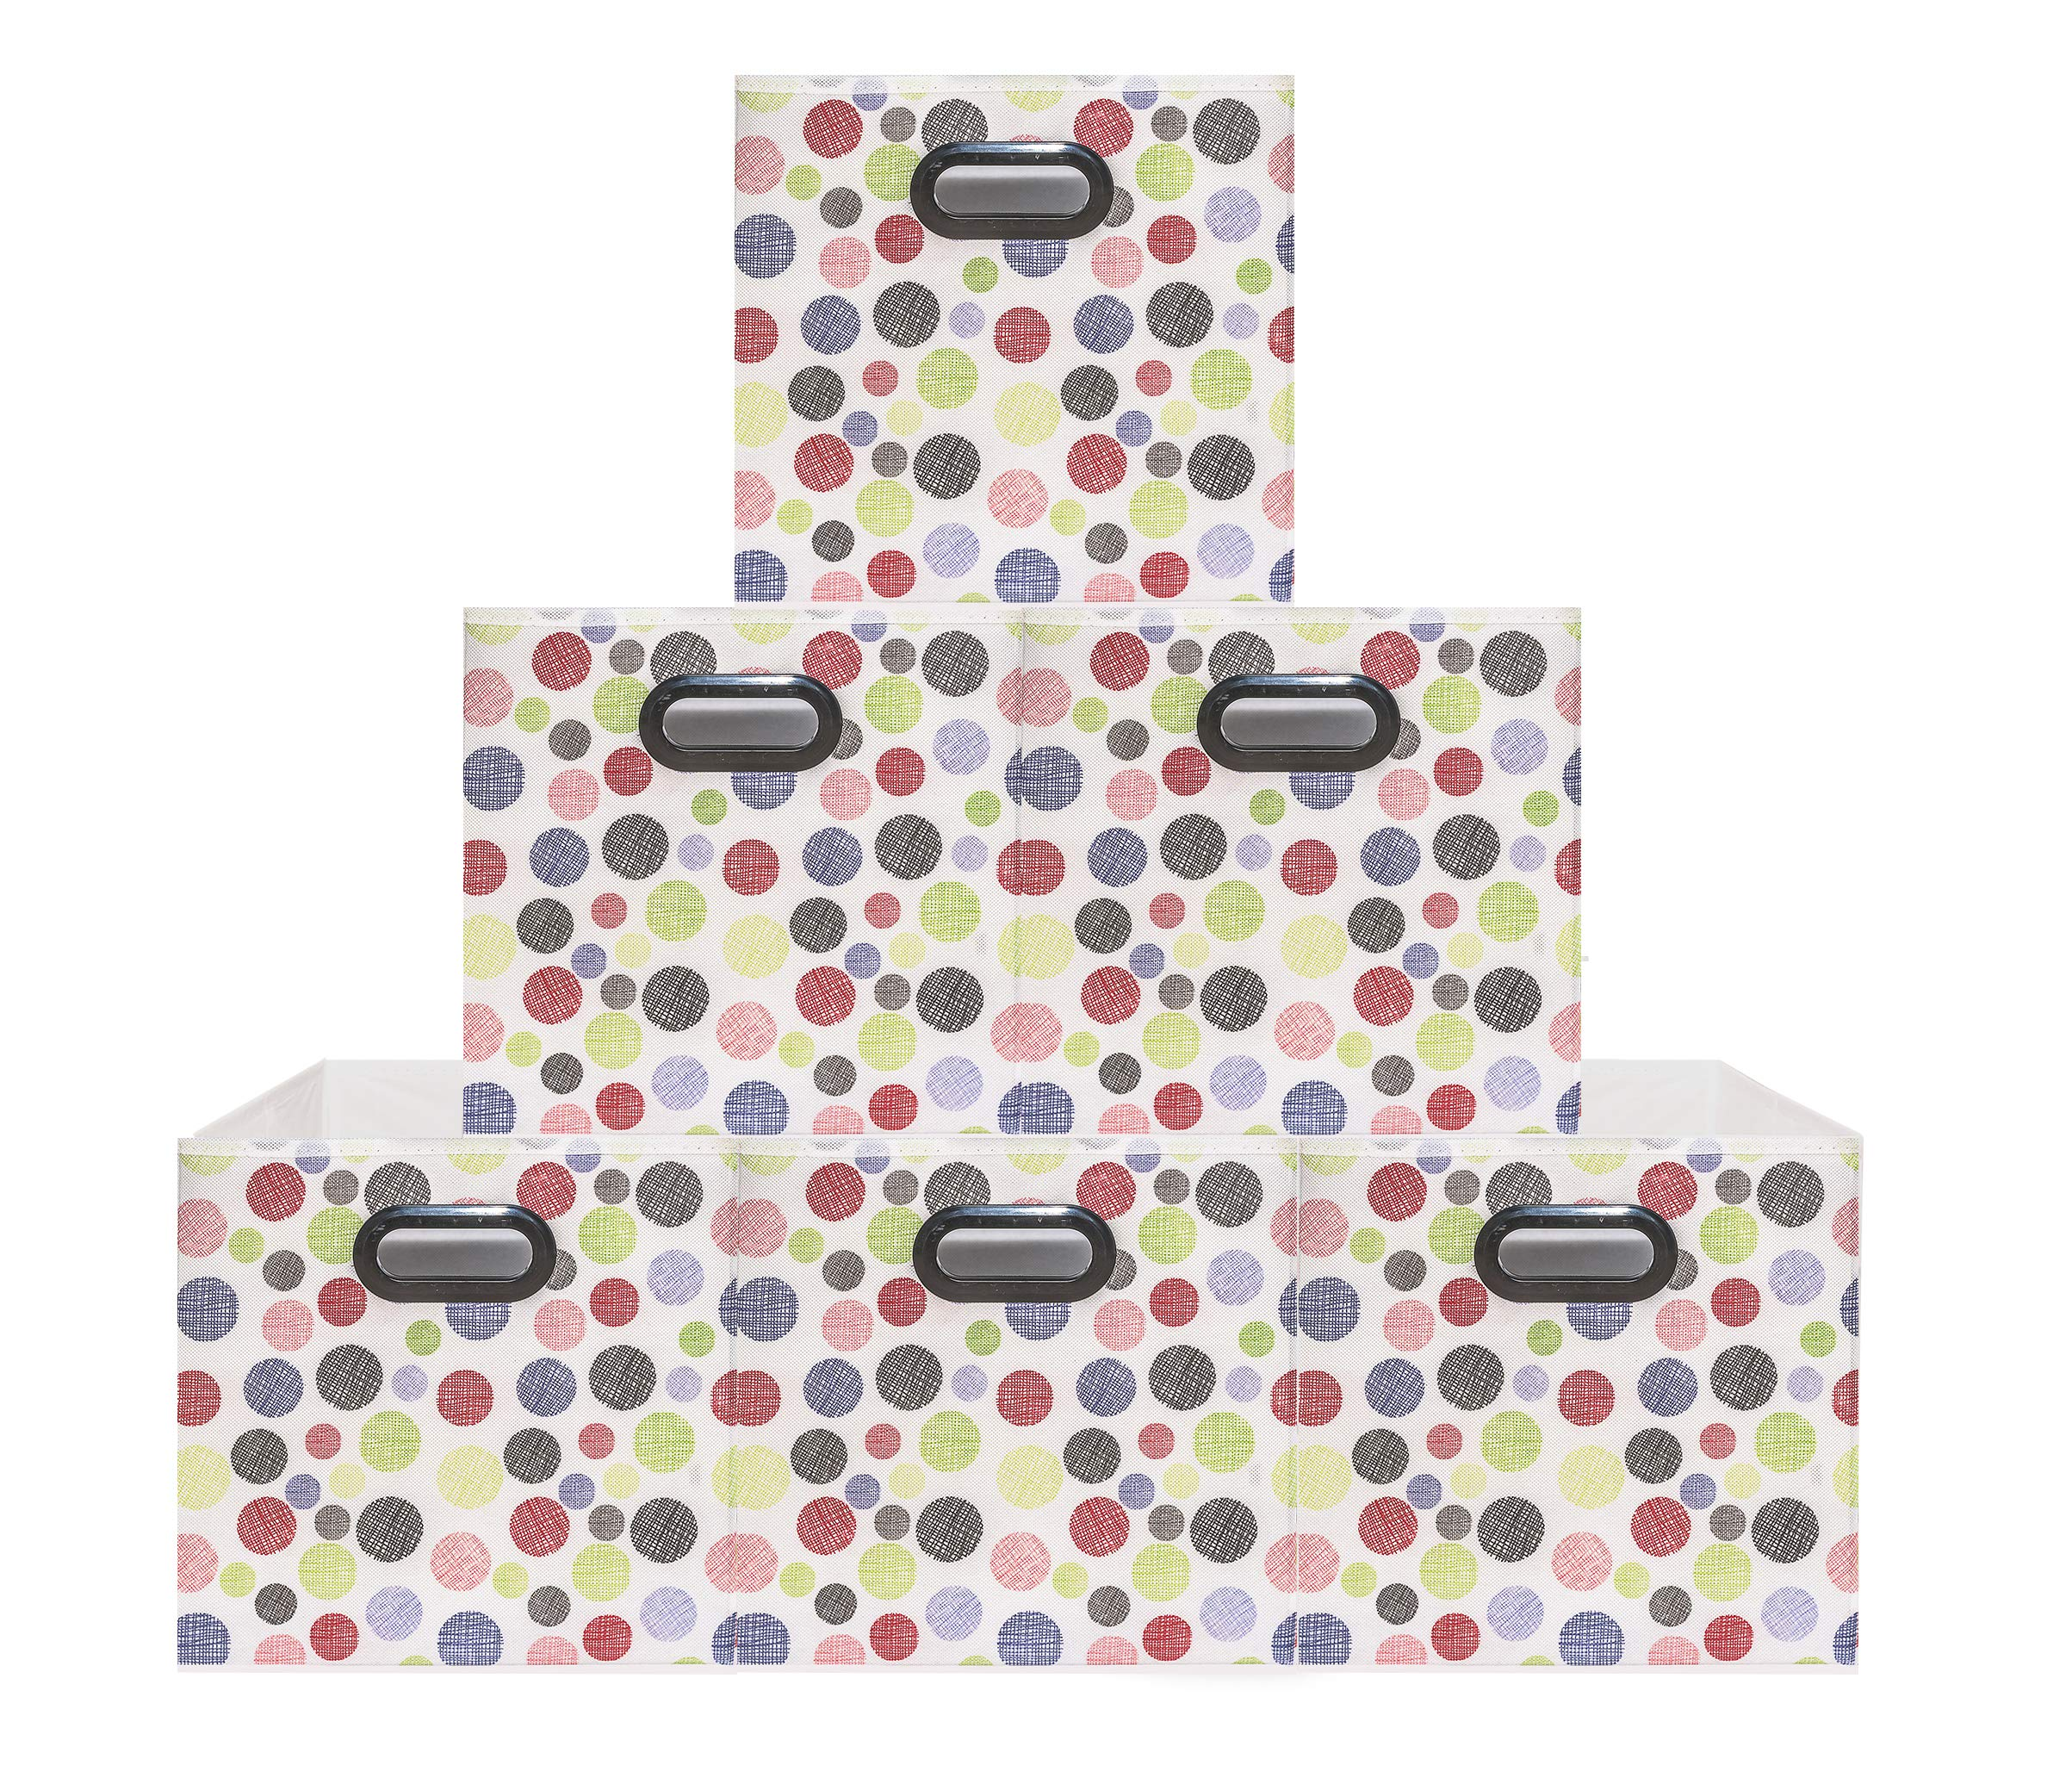 (6 Pack Polka Pattern) Unique Design Storage Bins,Stylish Containers, Gift Boxes,Strong Beautiful Tote, Baskets| Two Plastic Handles Collapsible Cubes Household Organization |for Nursery or Offices